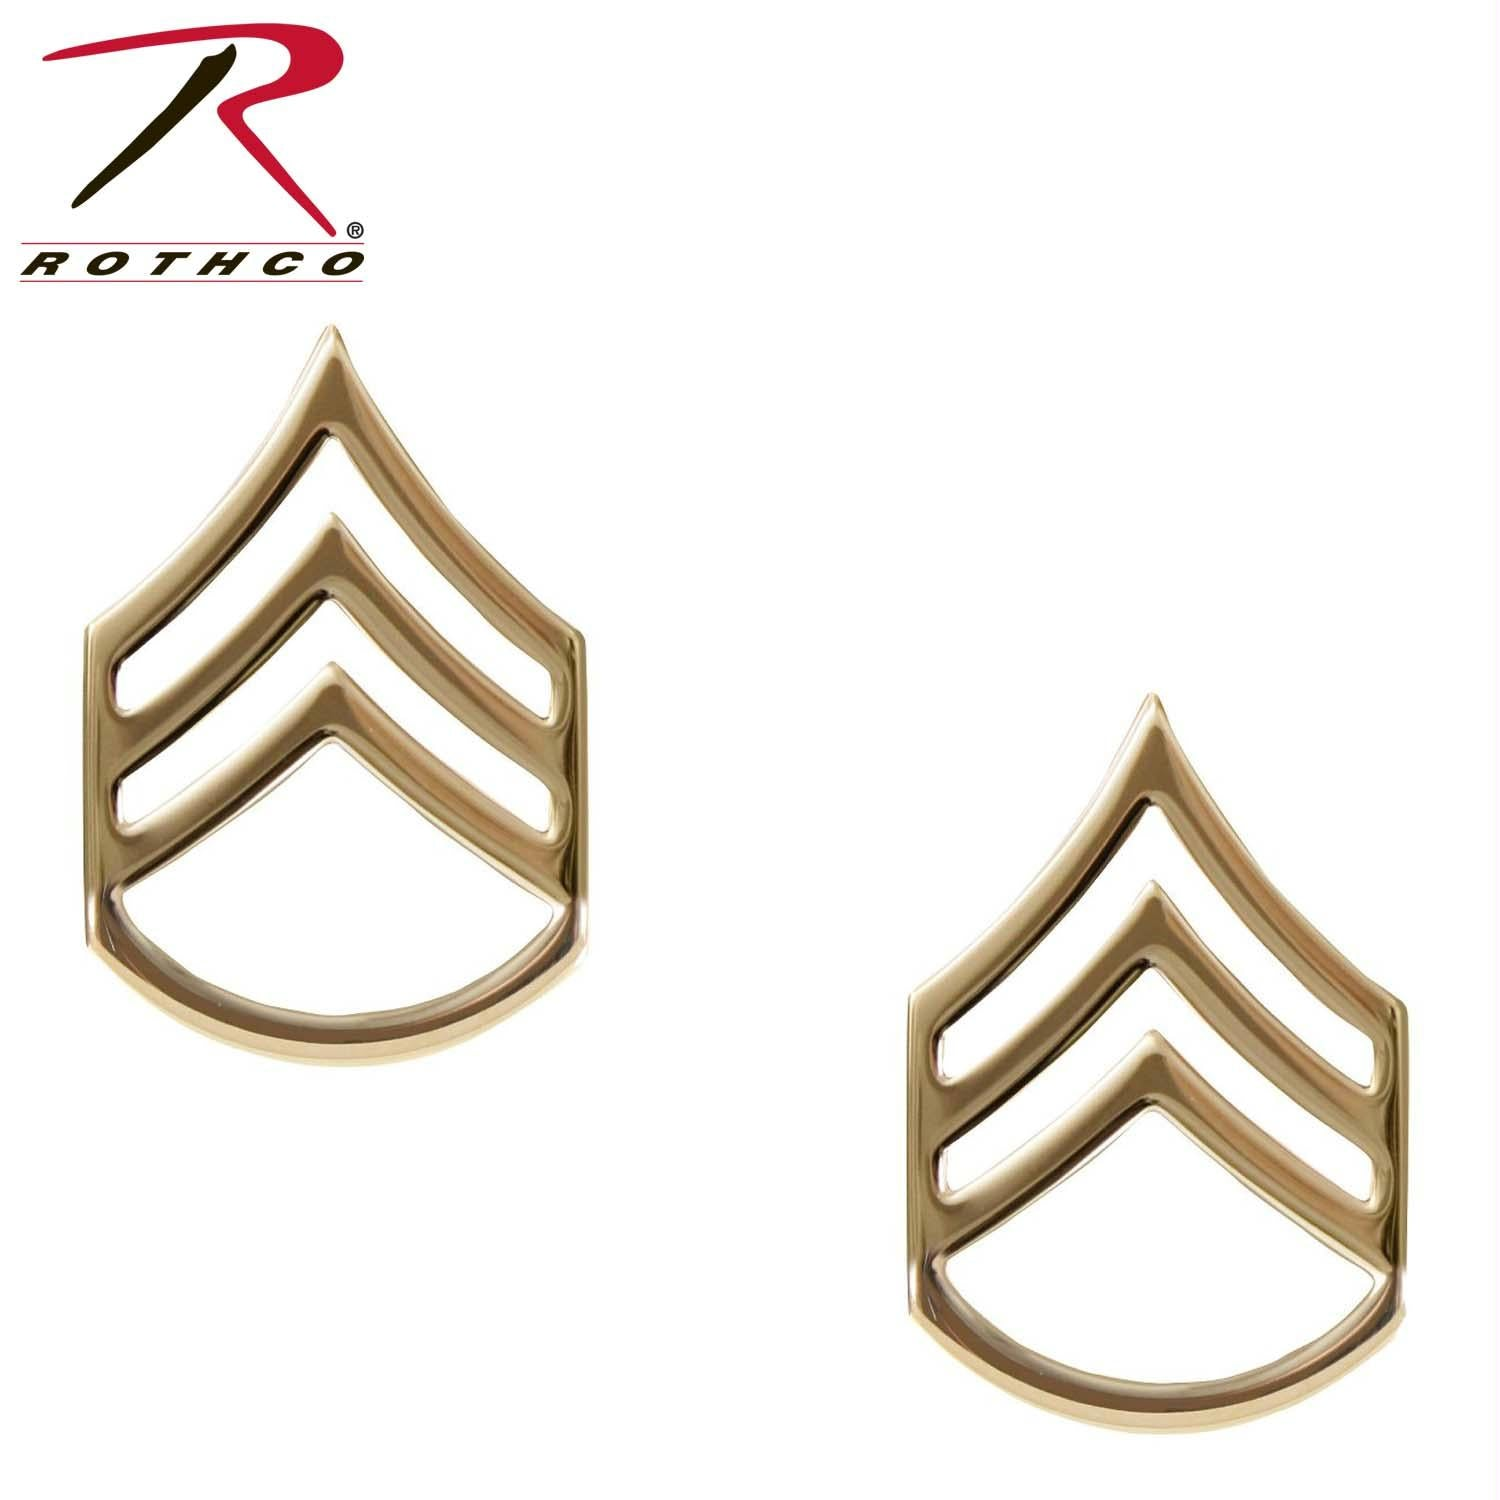 Rothco Staff Sergeant Polished Insignia - Gold